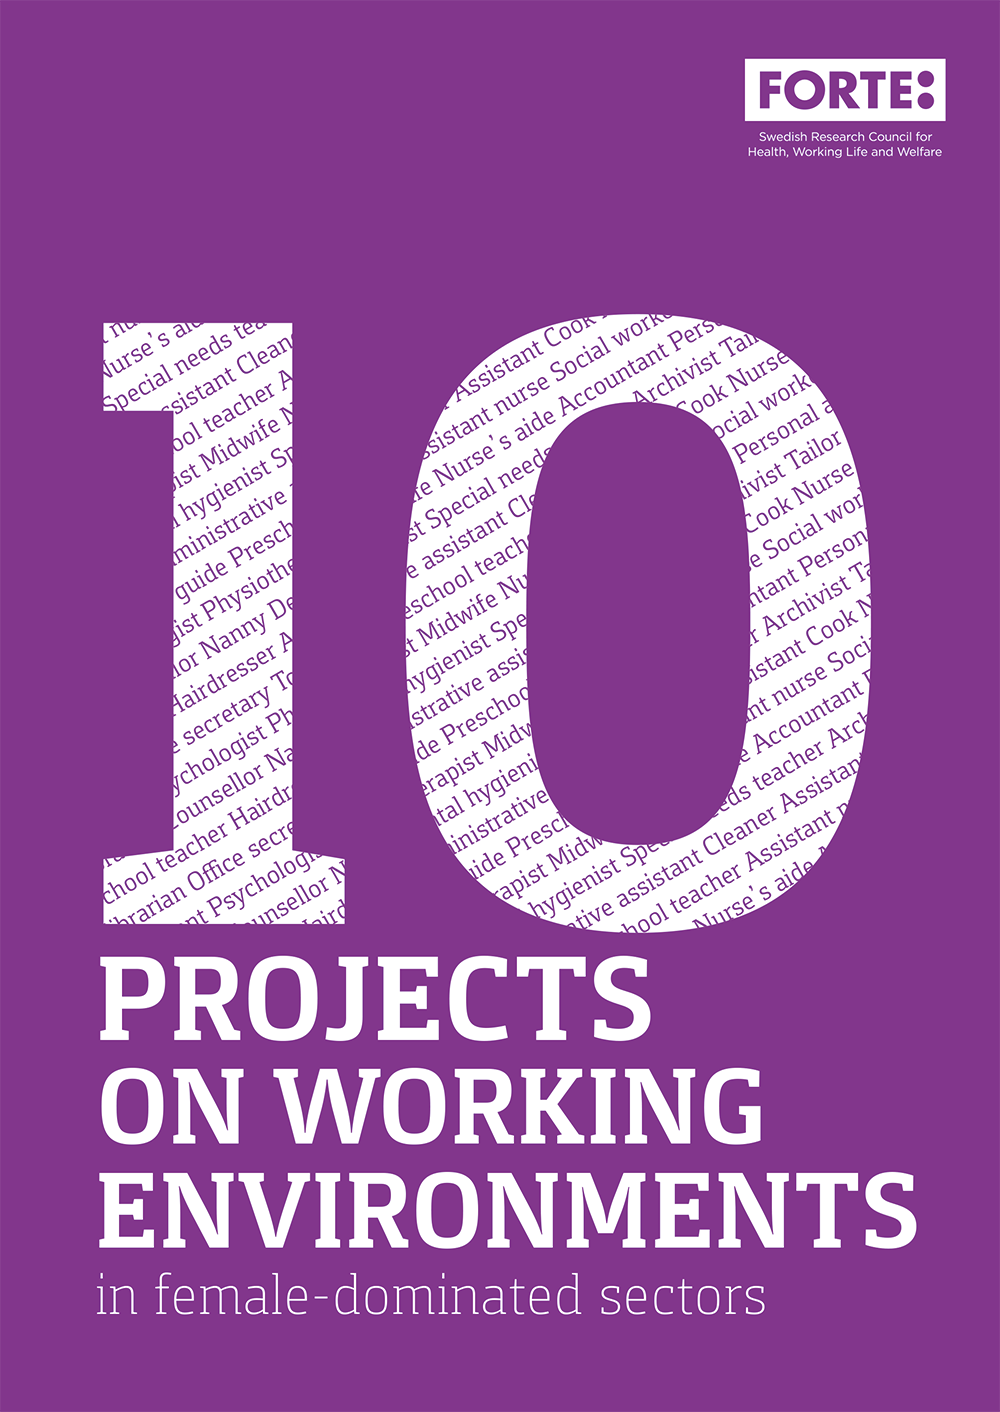 10 projects on working environments in female-dominated sectors